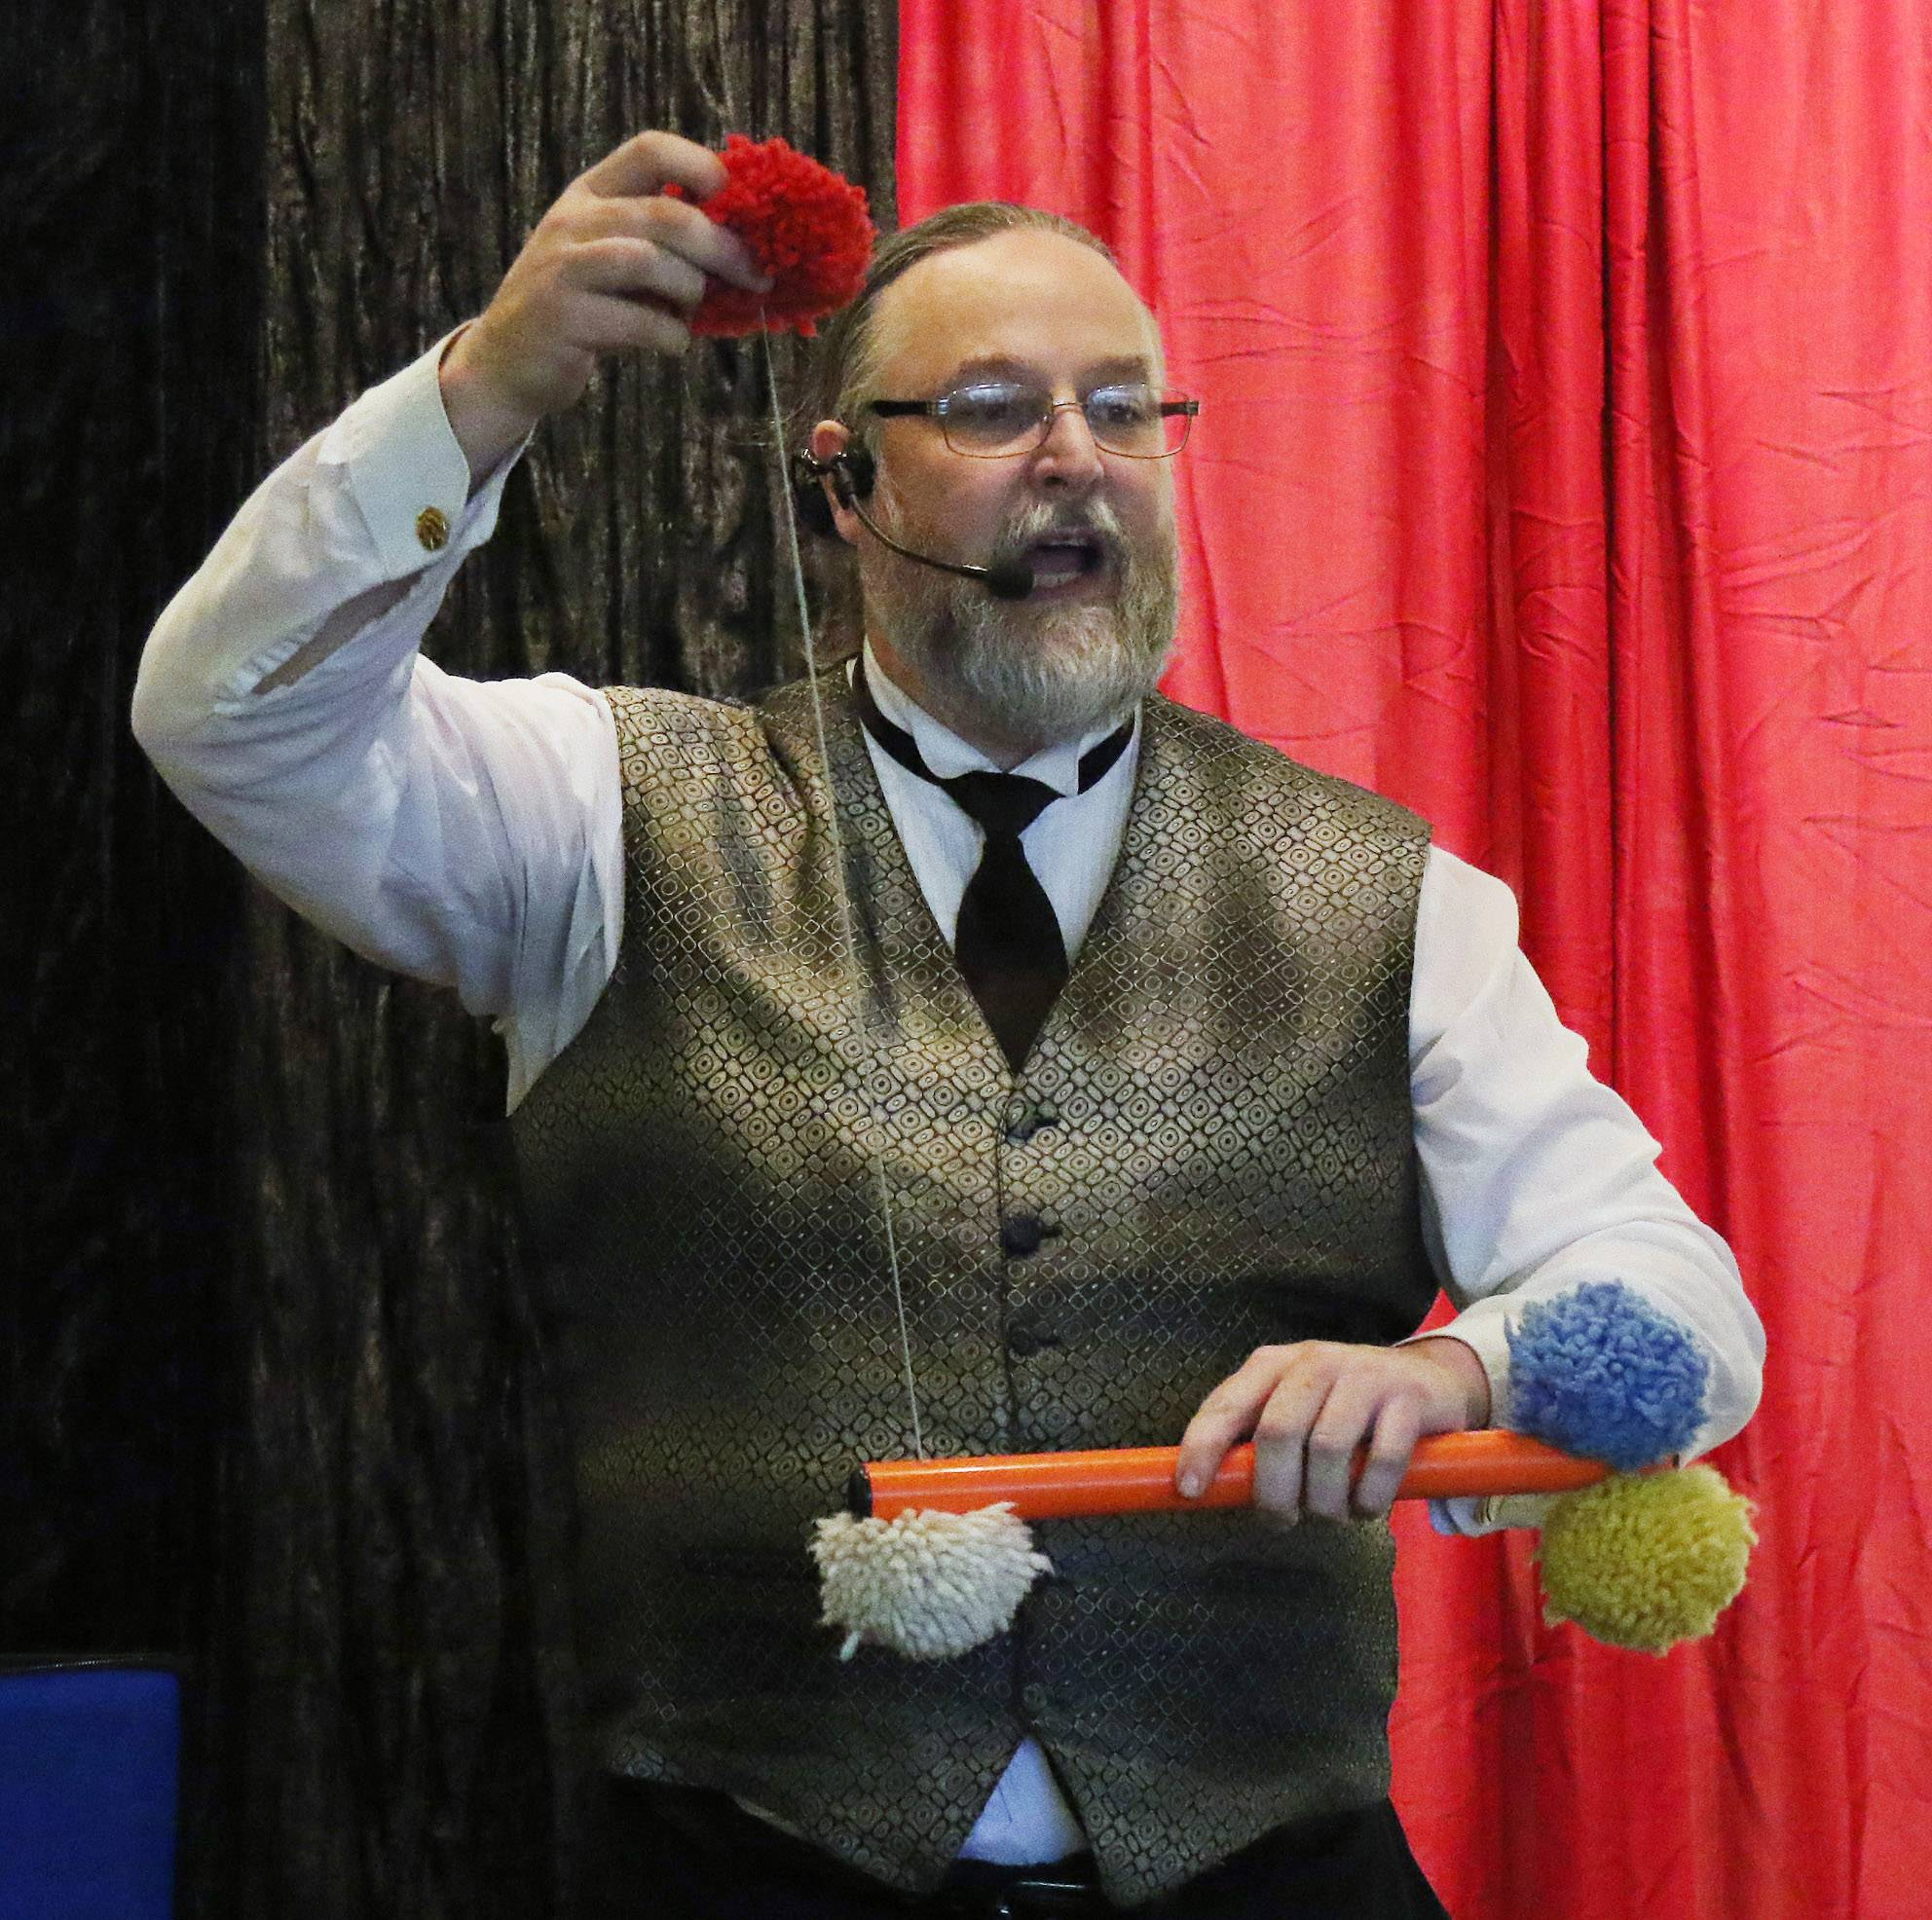 Magician Keith Cobb performs a trick Monday at Wauconda Area Library.